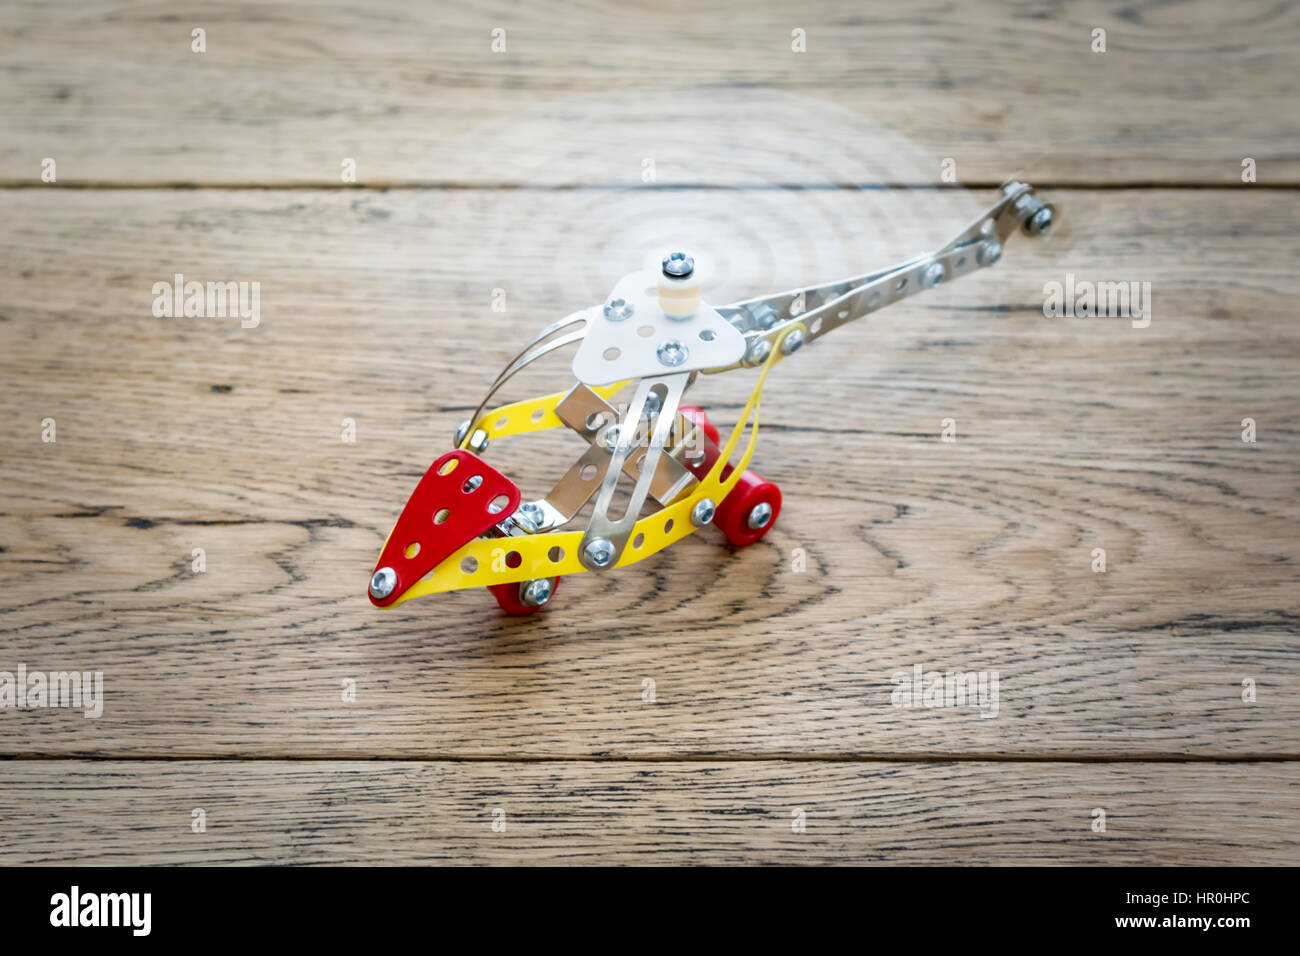 Children helicopter of metal designer with spinning propeller on the wooden table - Stock Image